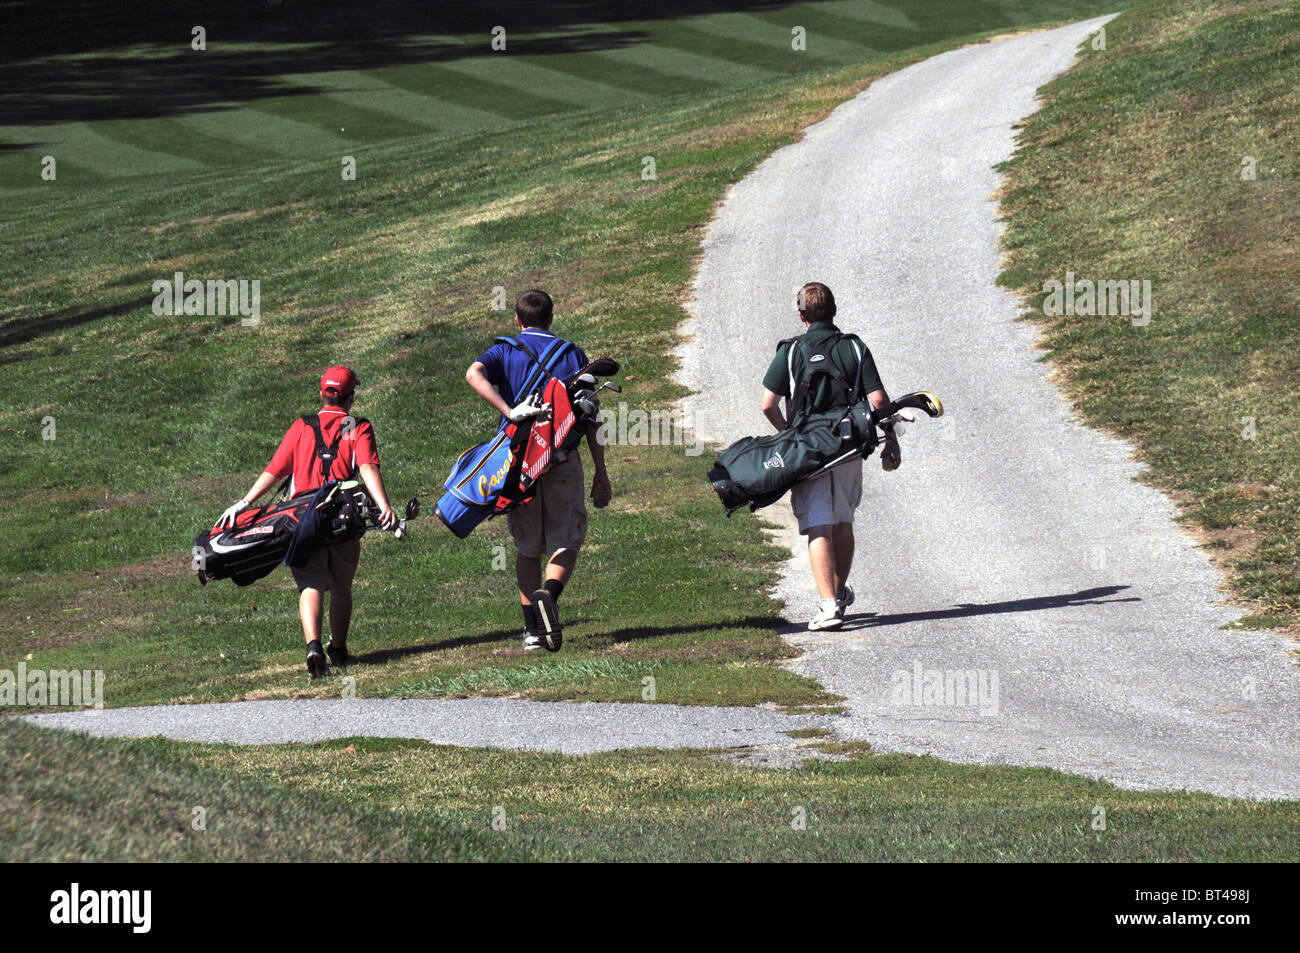 Golfers walking to their next hole to tee off - Stock Image